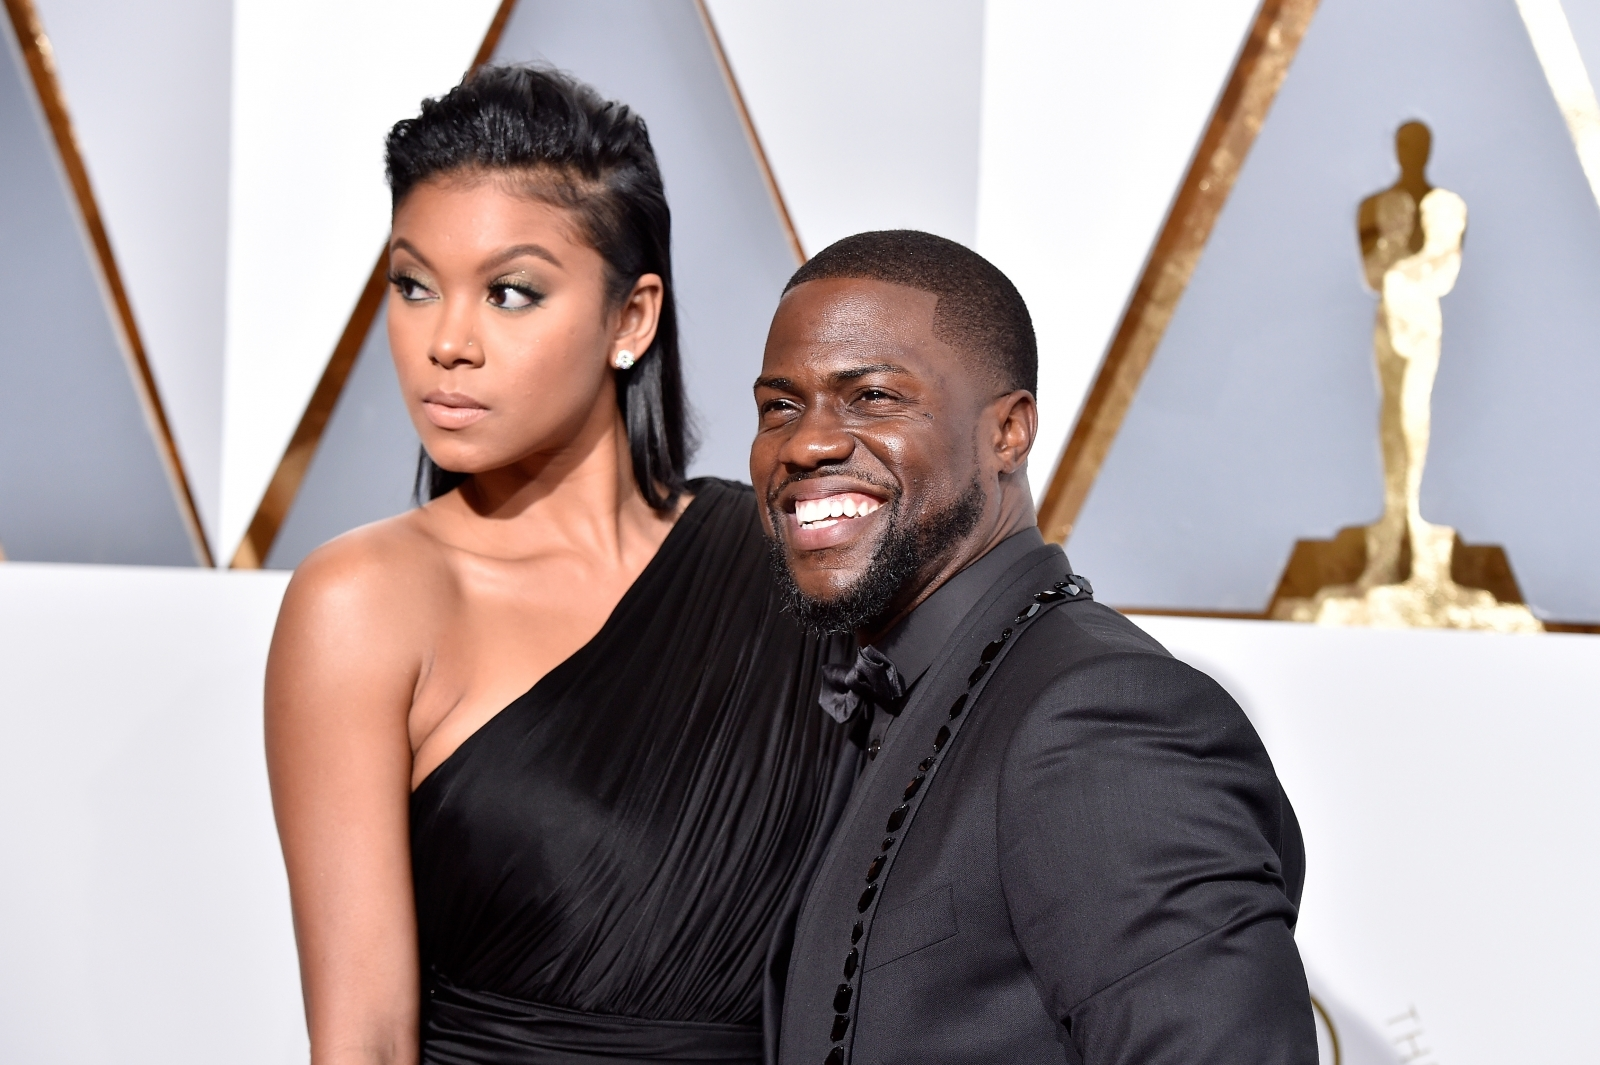 Kevin Hart and wife Eniko welcome newborn